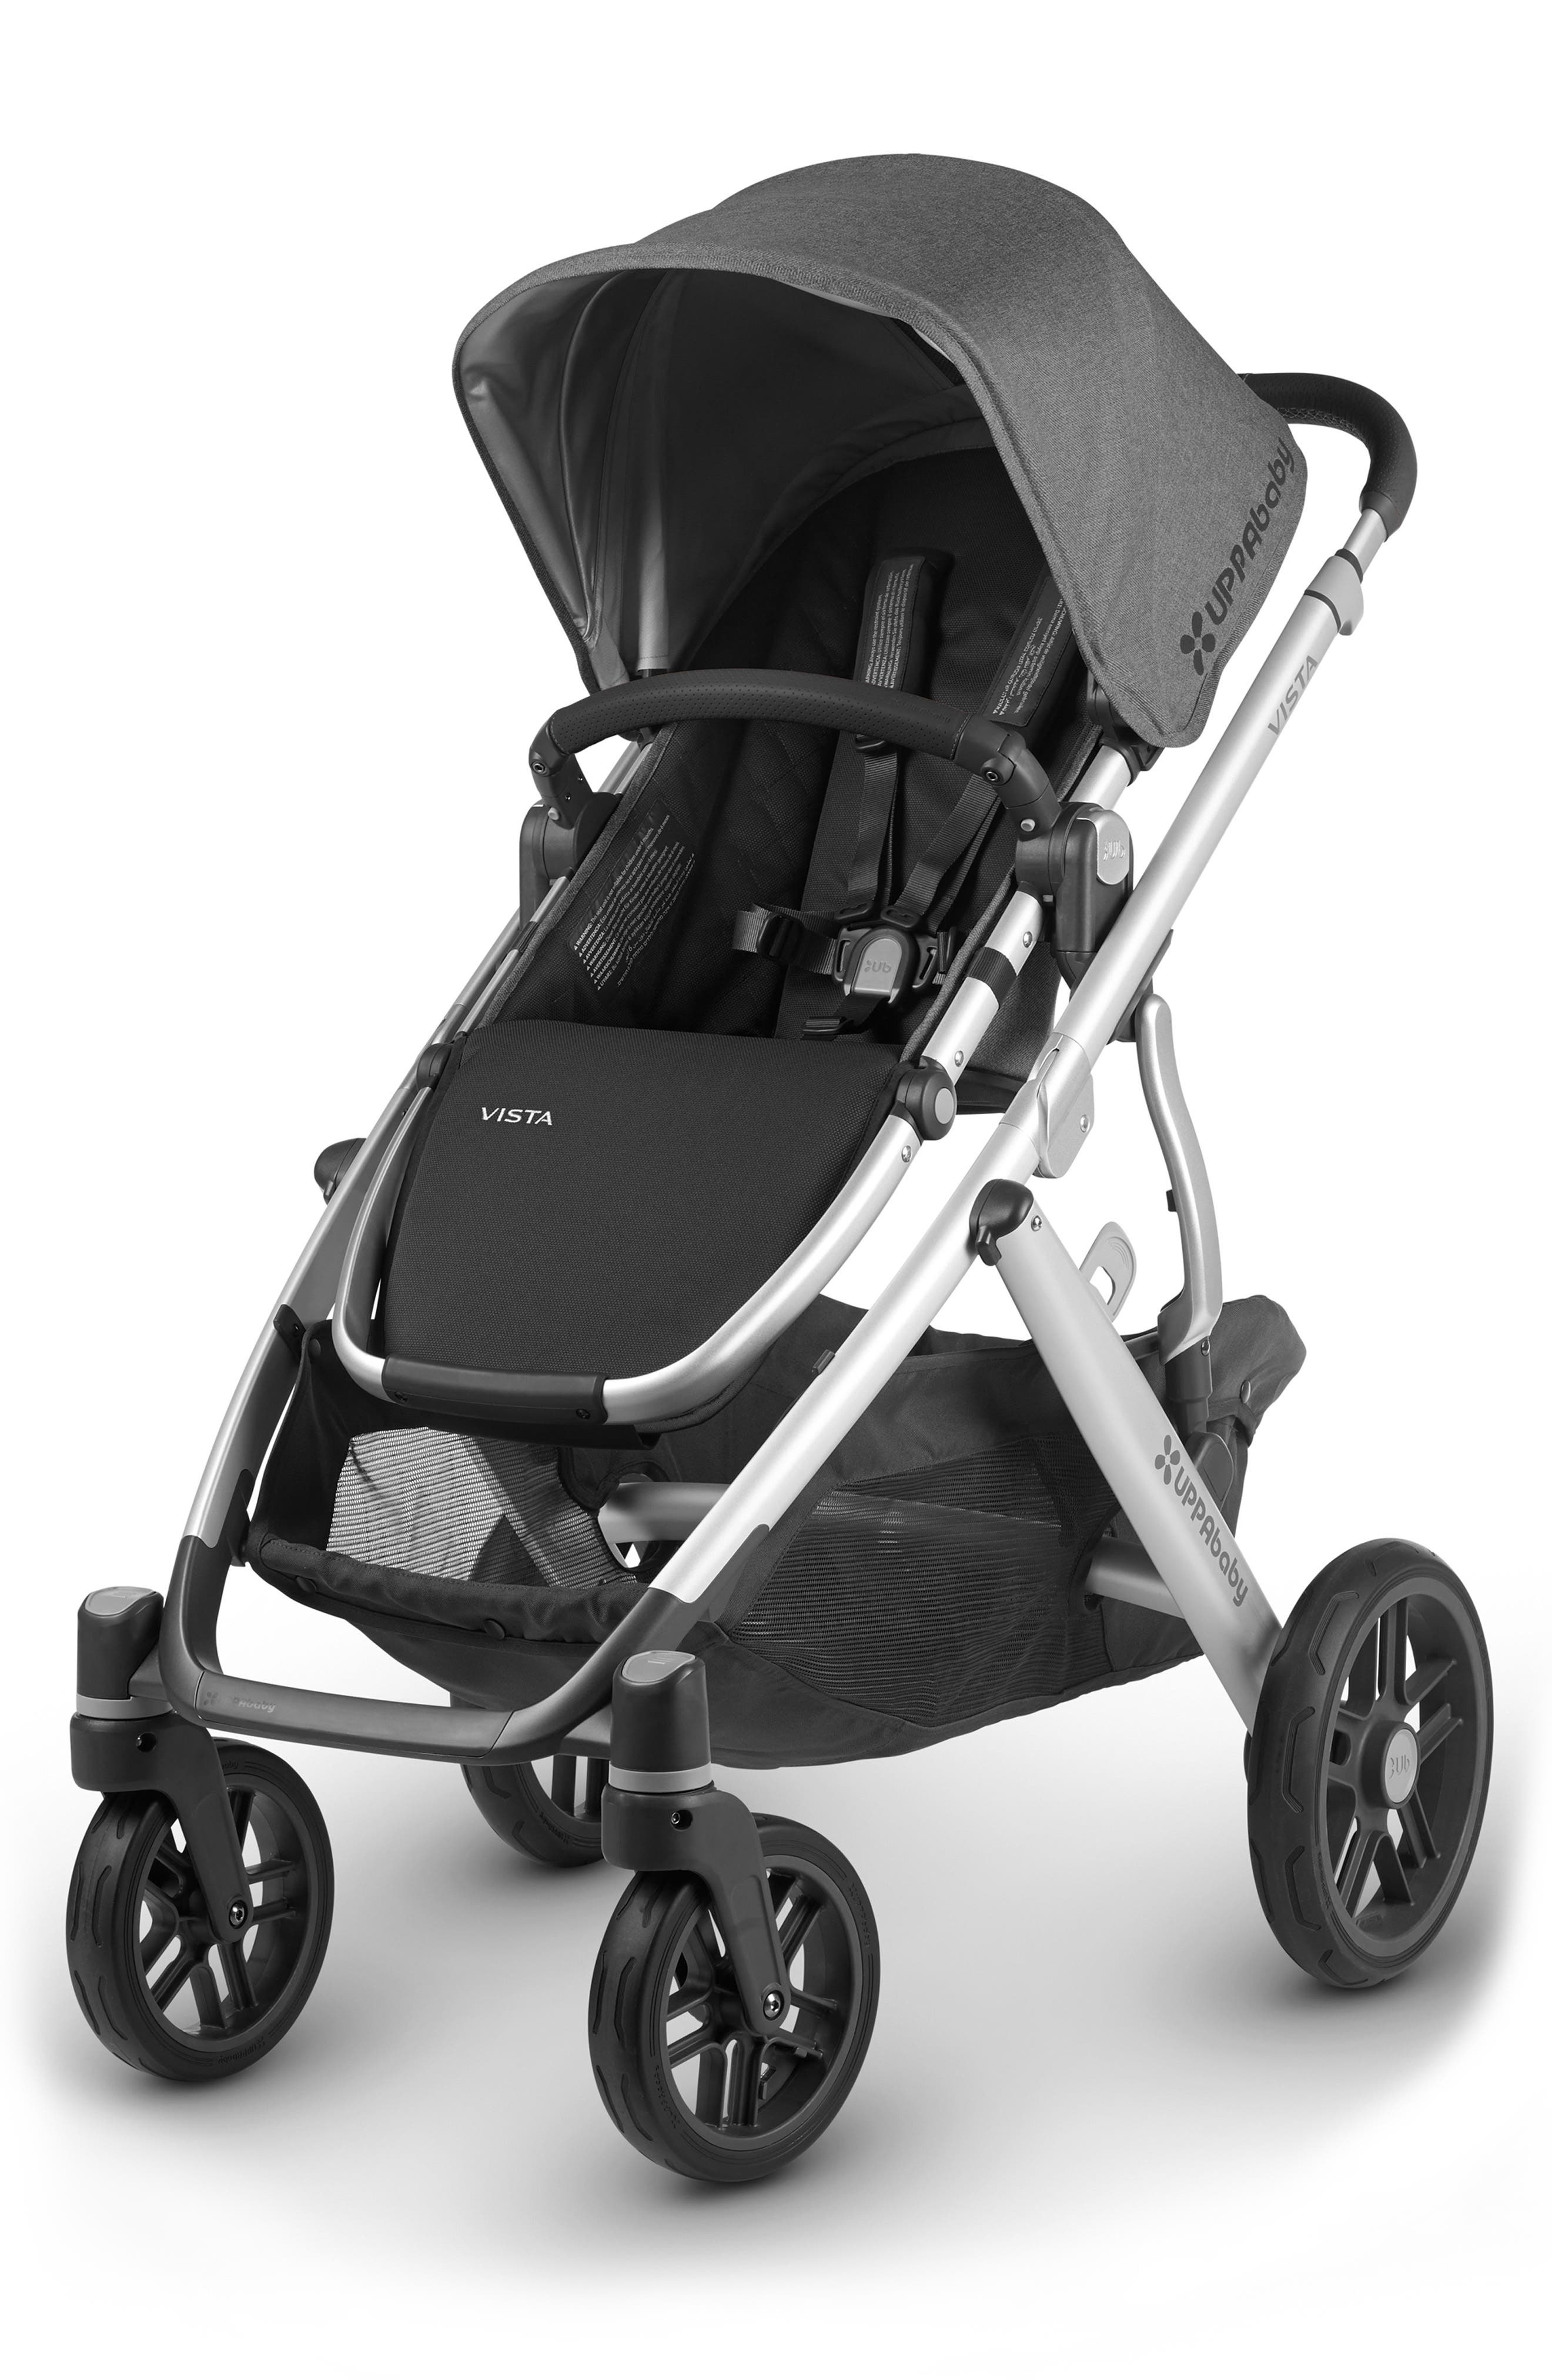 2018 VISTA Aluminum Frame Convertible Complete Stroller with Leather Trim,                             Main thumbnail 1, color,                             Jordan Charcoal/ Silver